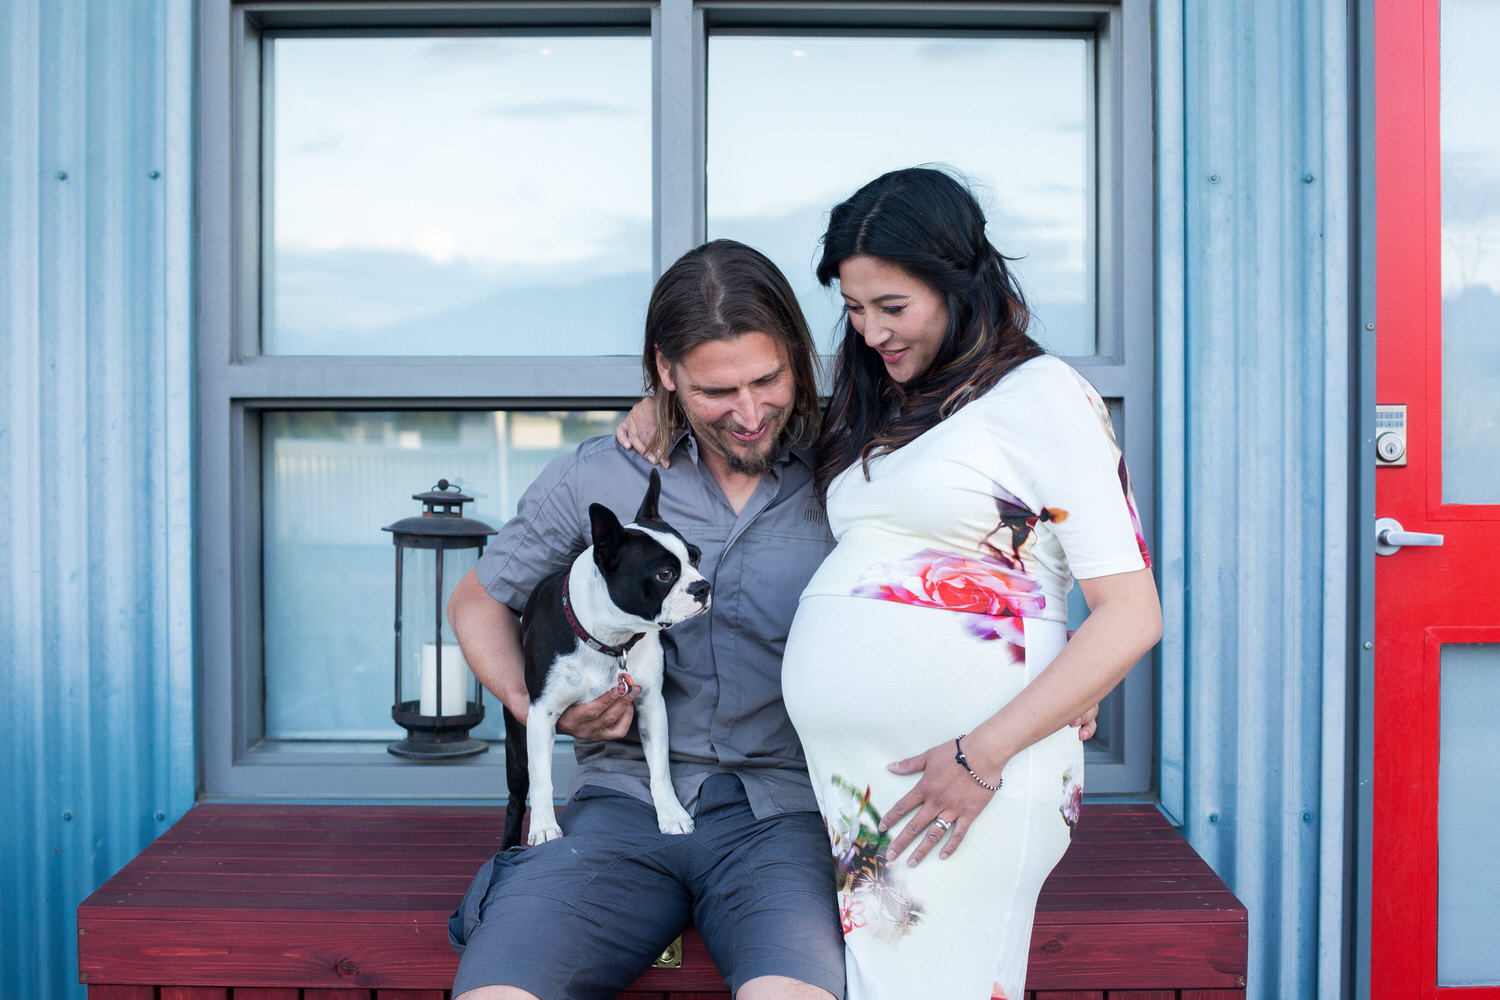 Lifestyle maternity family session vancouver event photographer candid documentary natural authentic storytelling photography